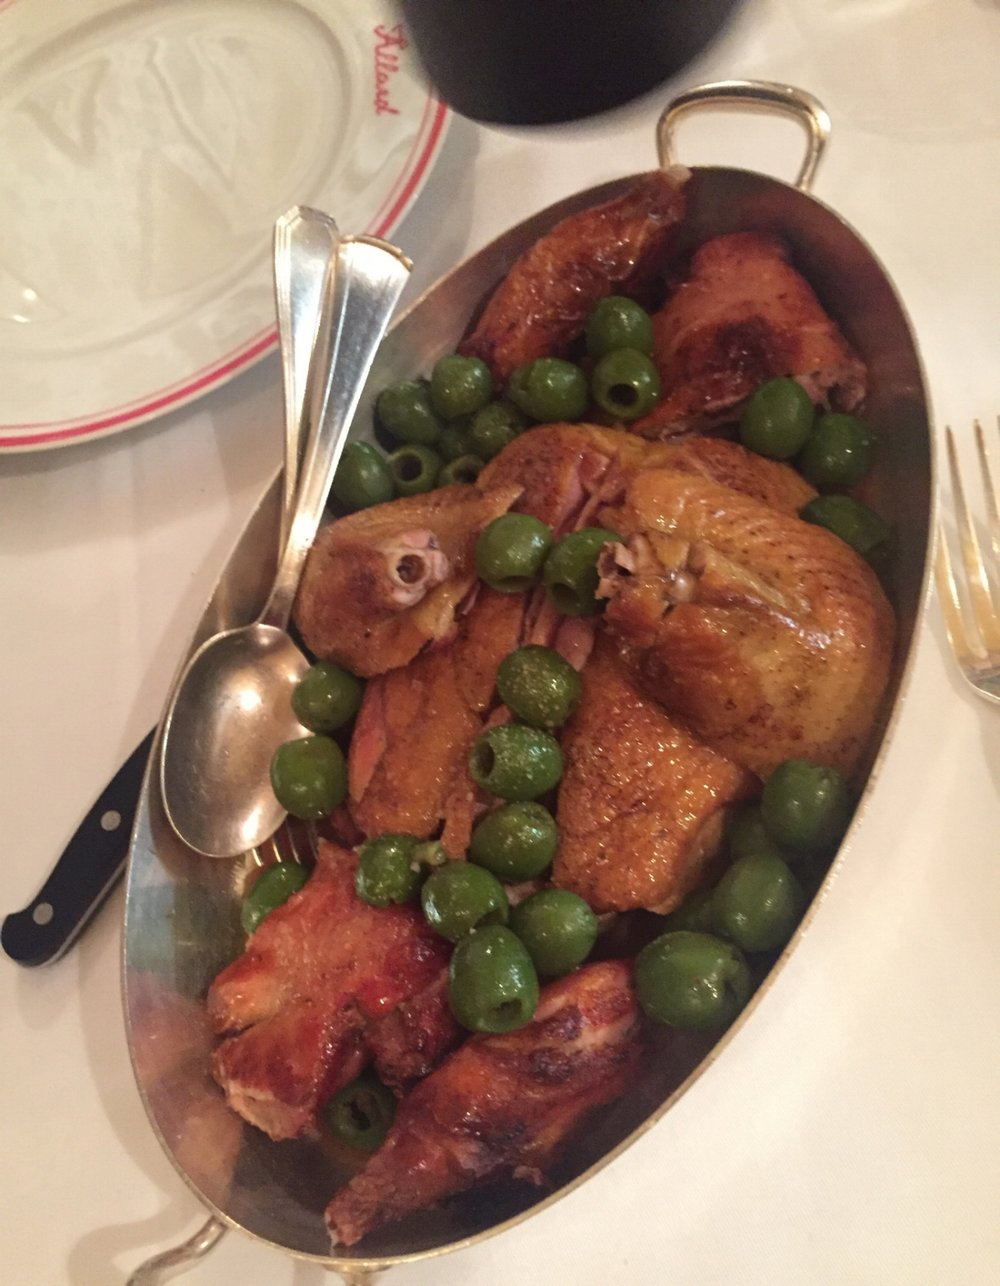 Restaurant Allard's signature dish is challans duck with green olives